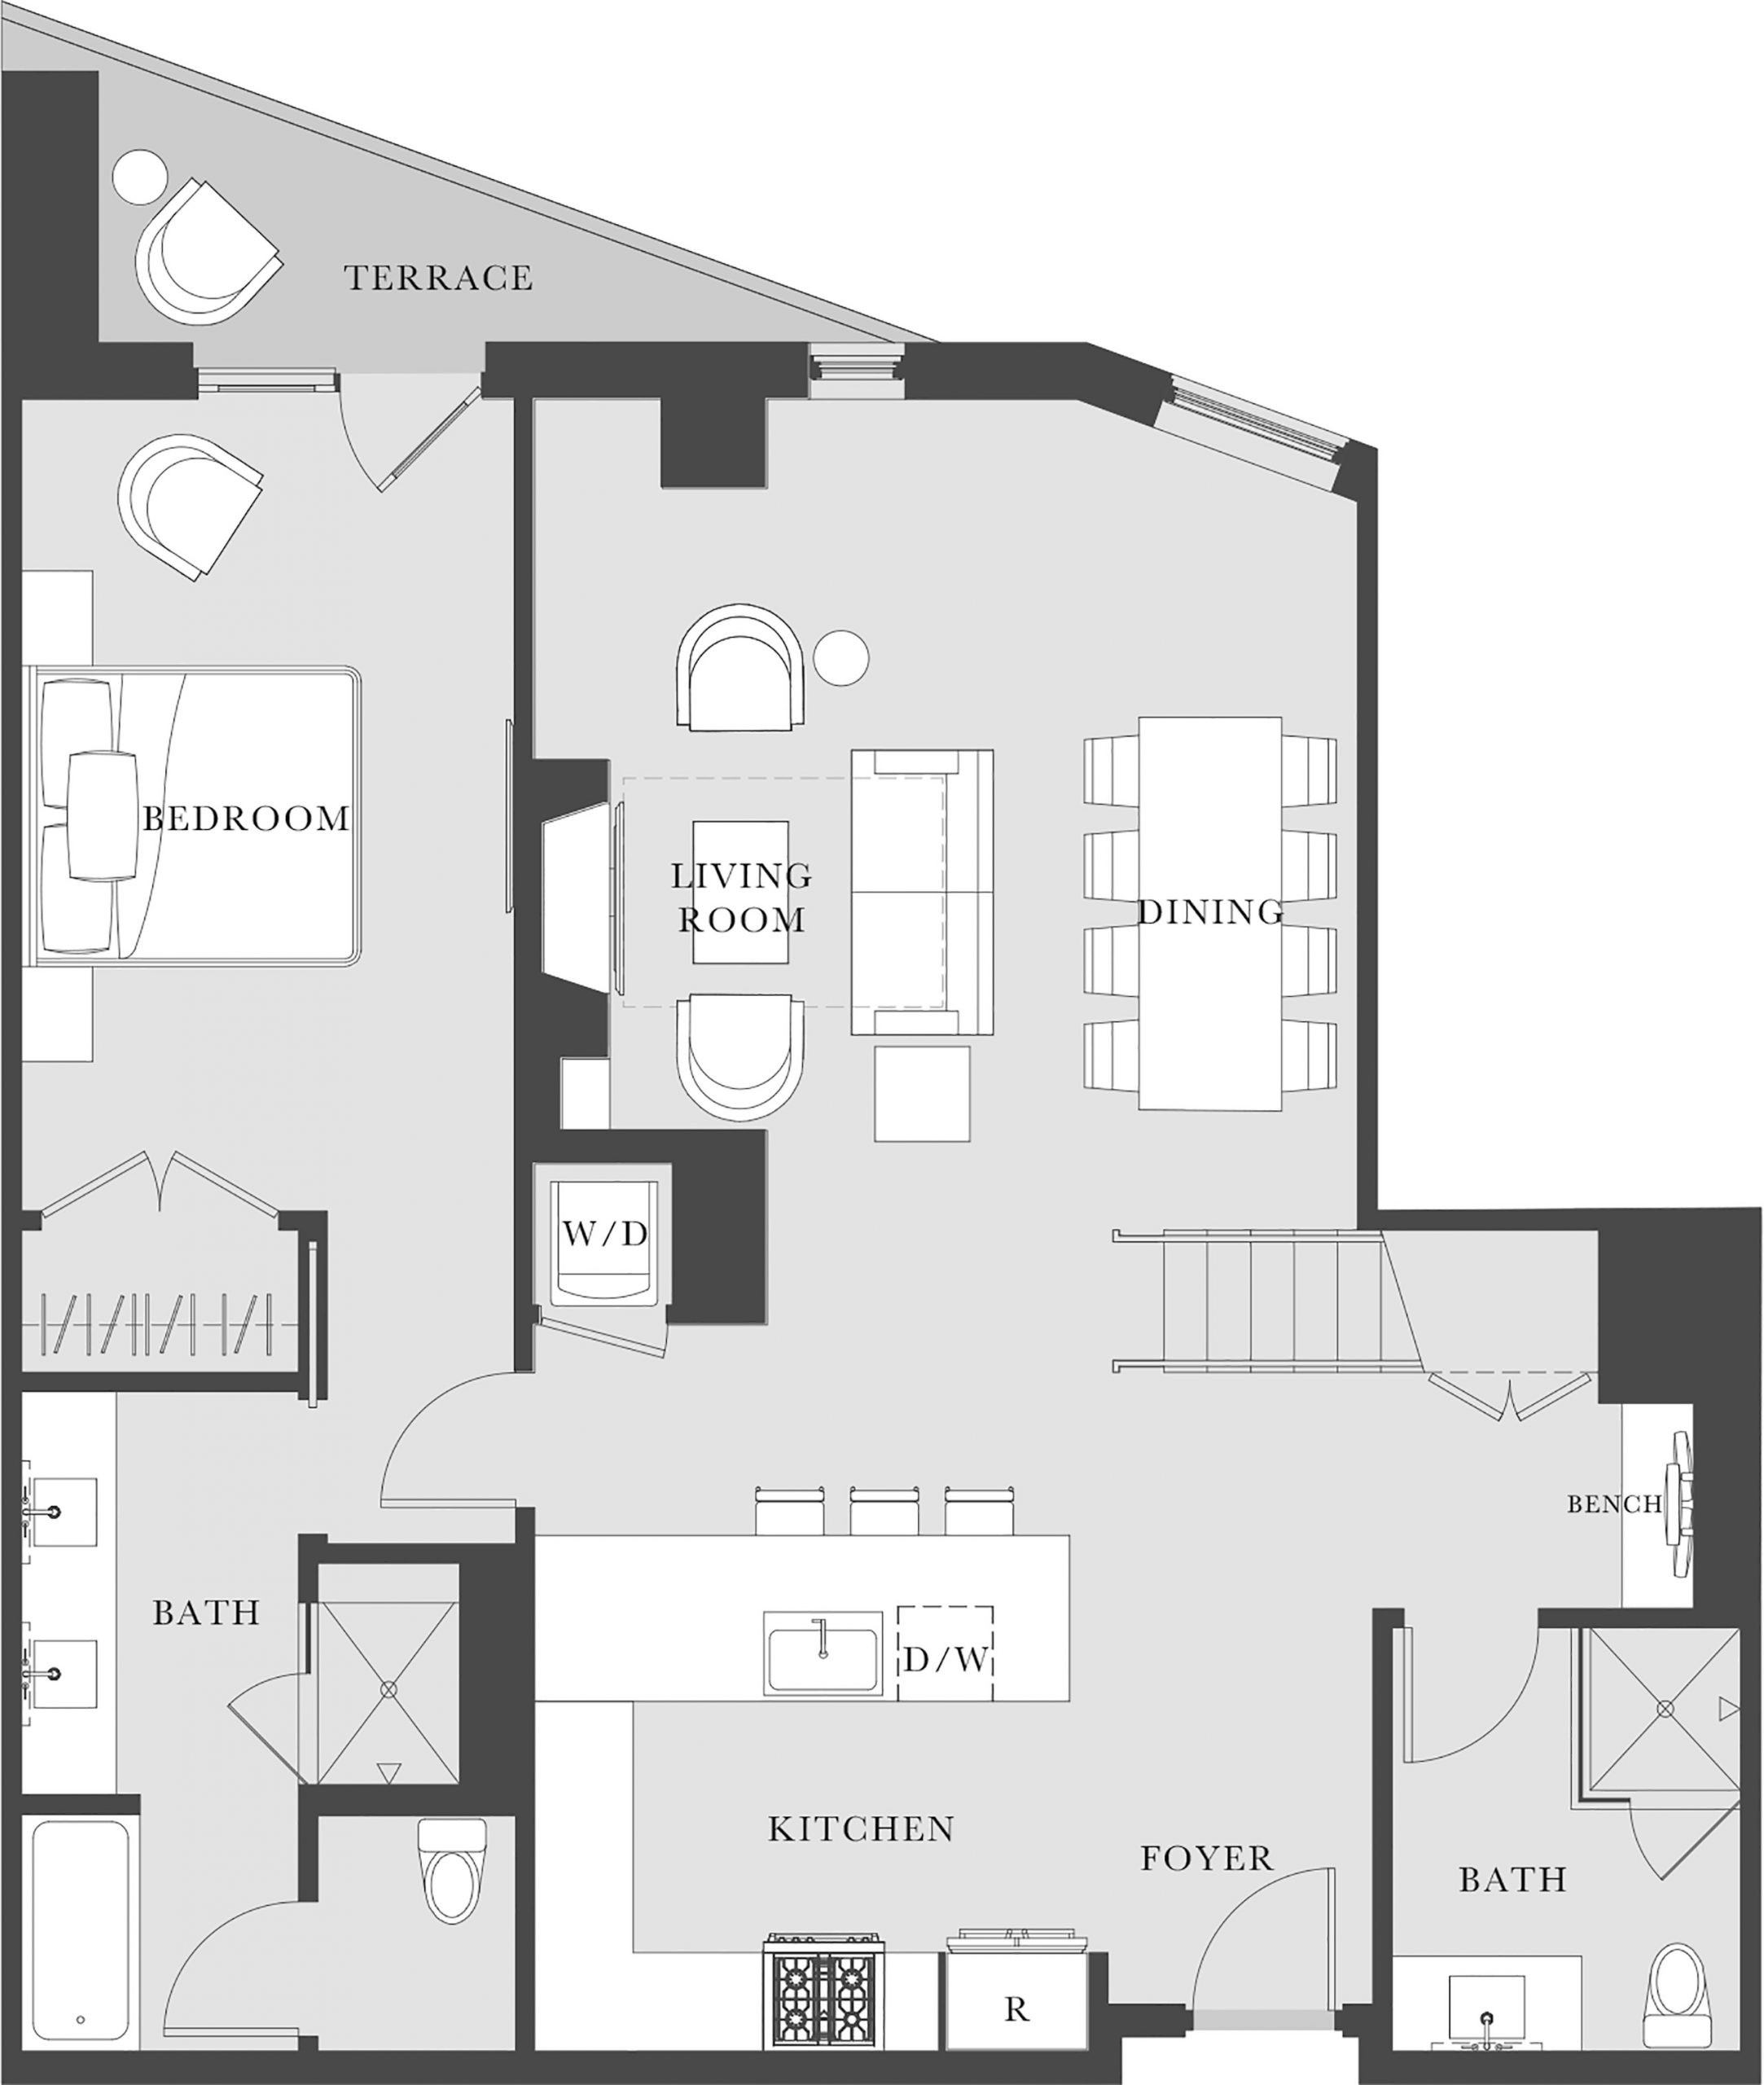 Townhome #2117 Lower